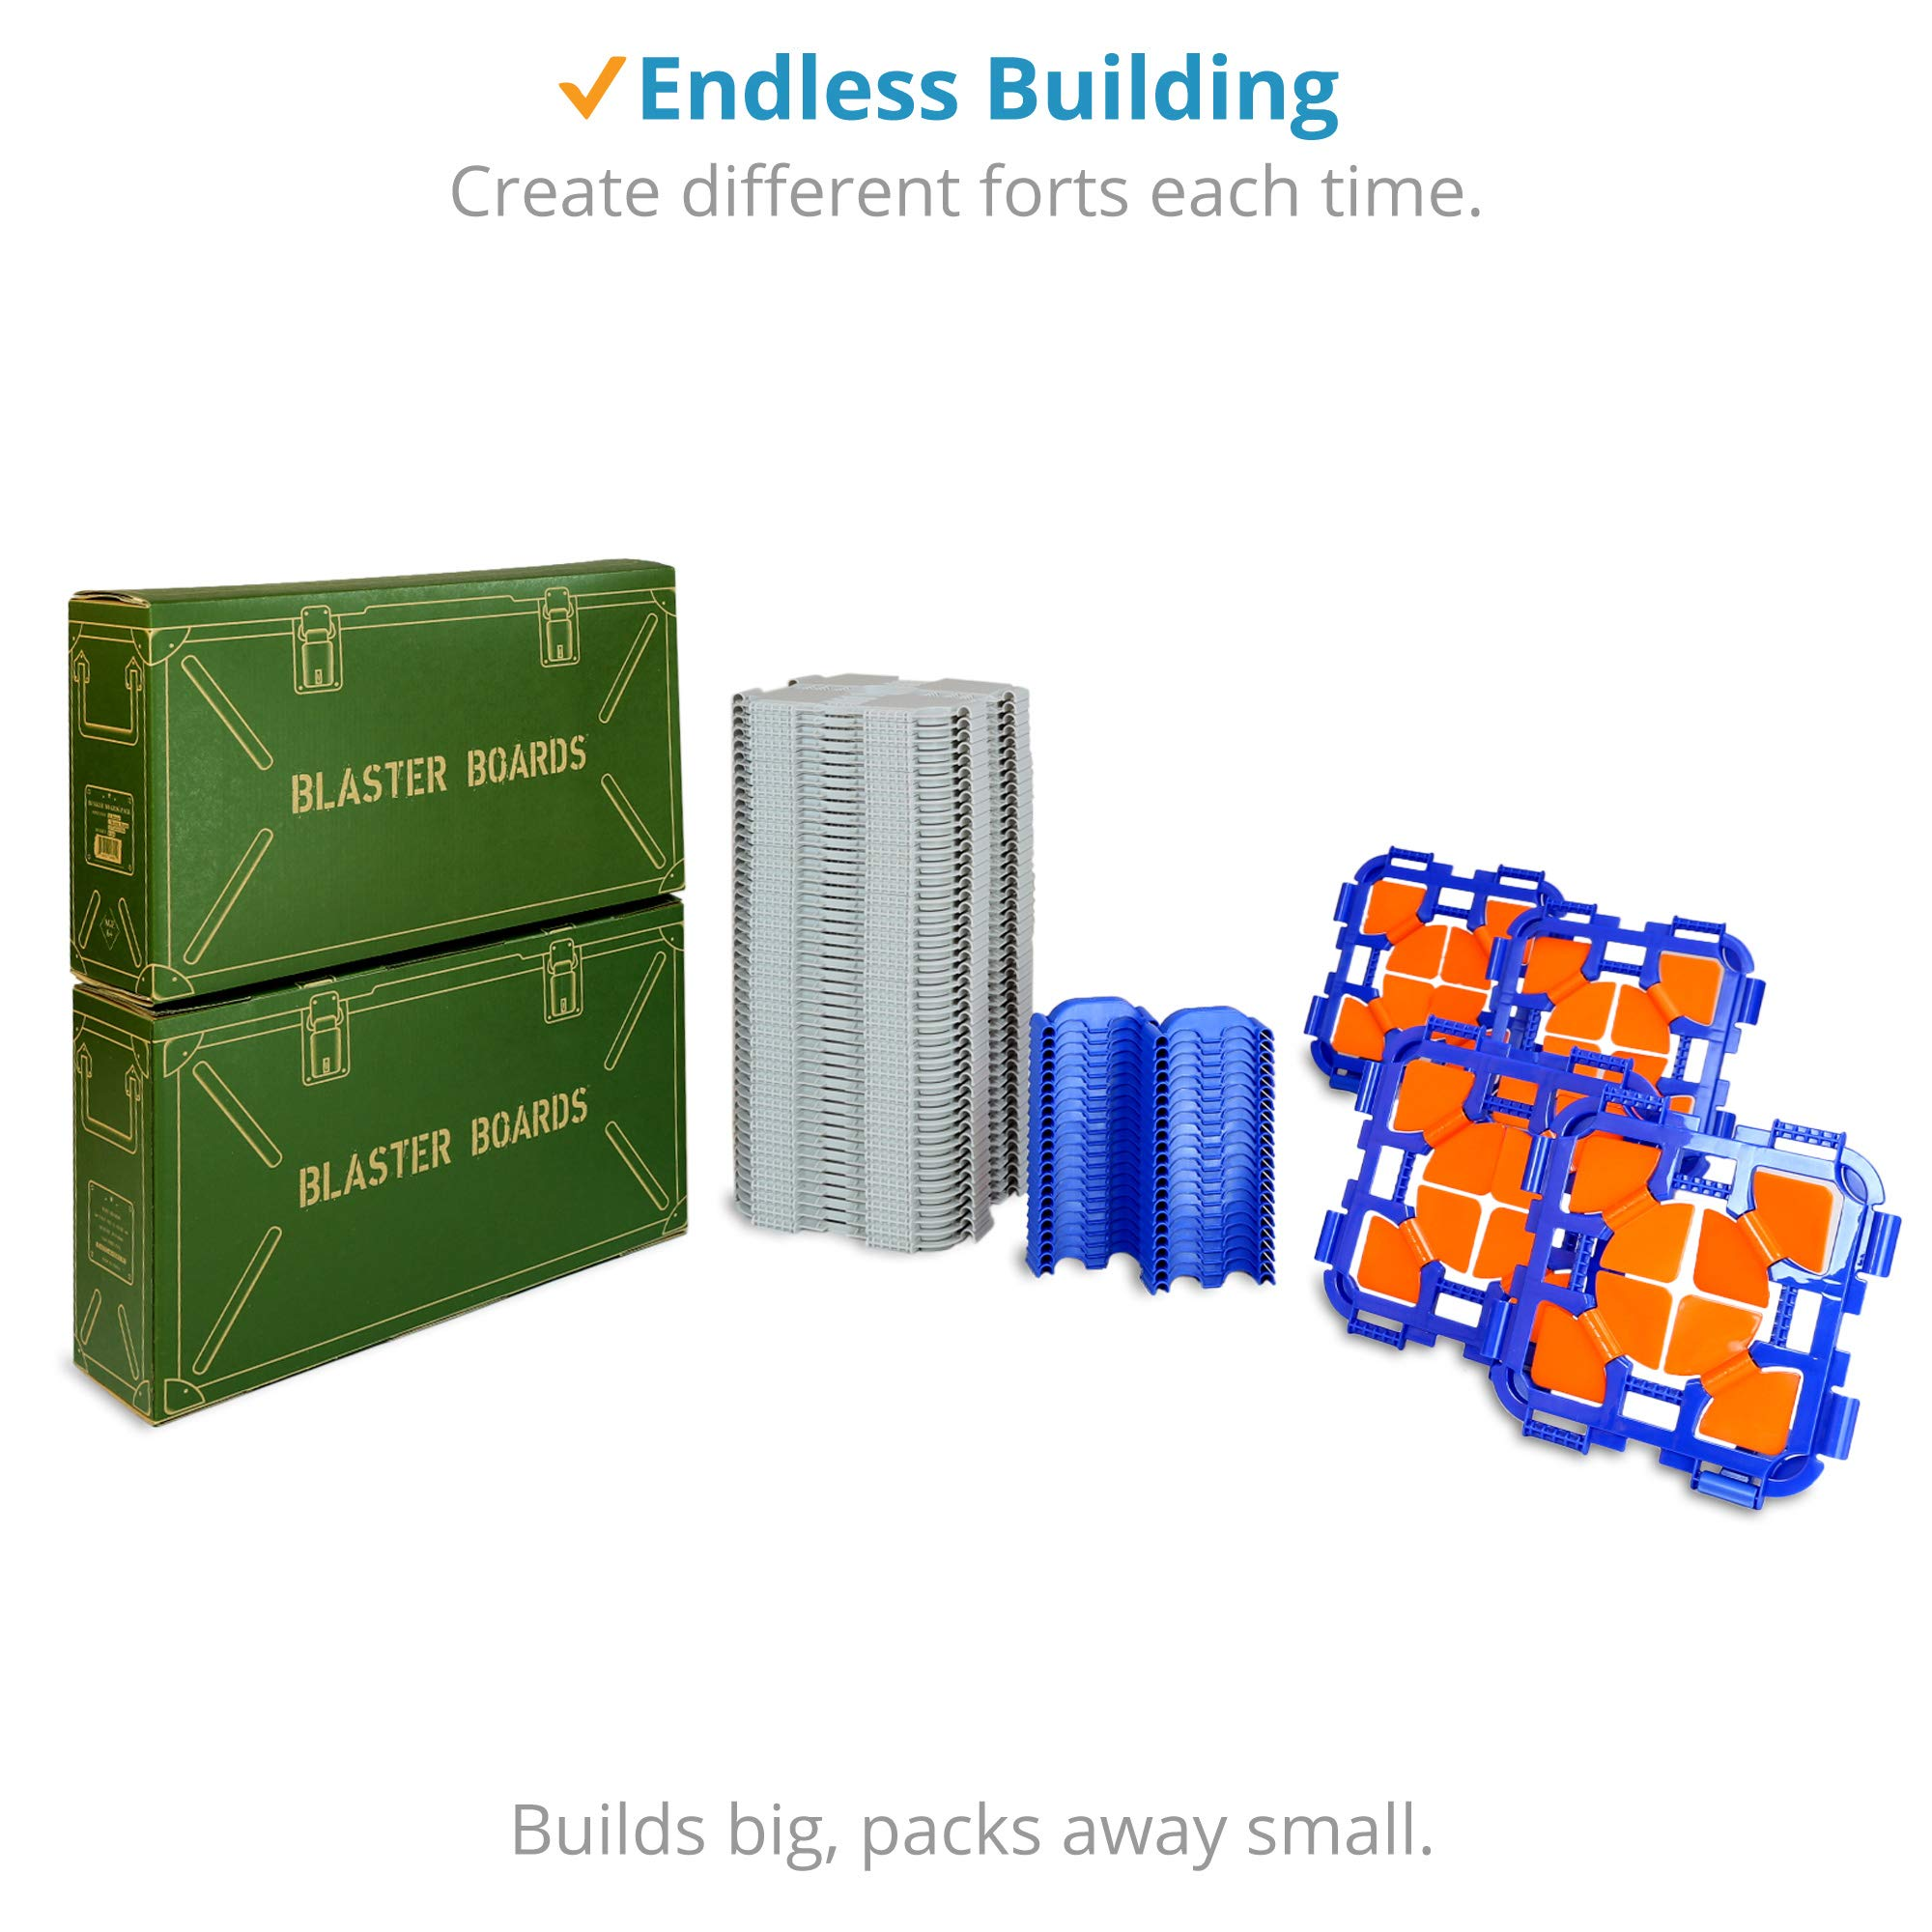 Blaster Boards - 2 Pack | Kids Fort Building Kit for Nerf Wars & Creative Play | 92 Piece Set by Blaster Boards (Image #3)